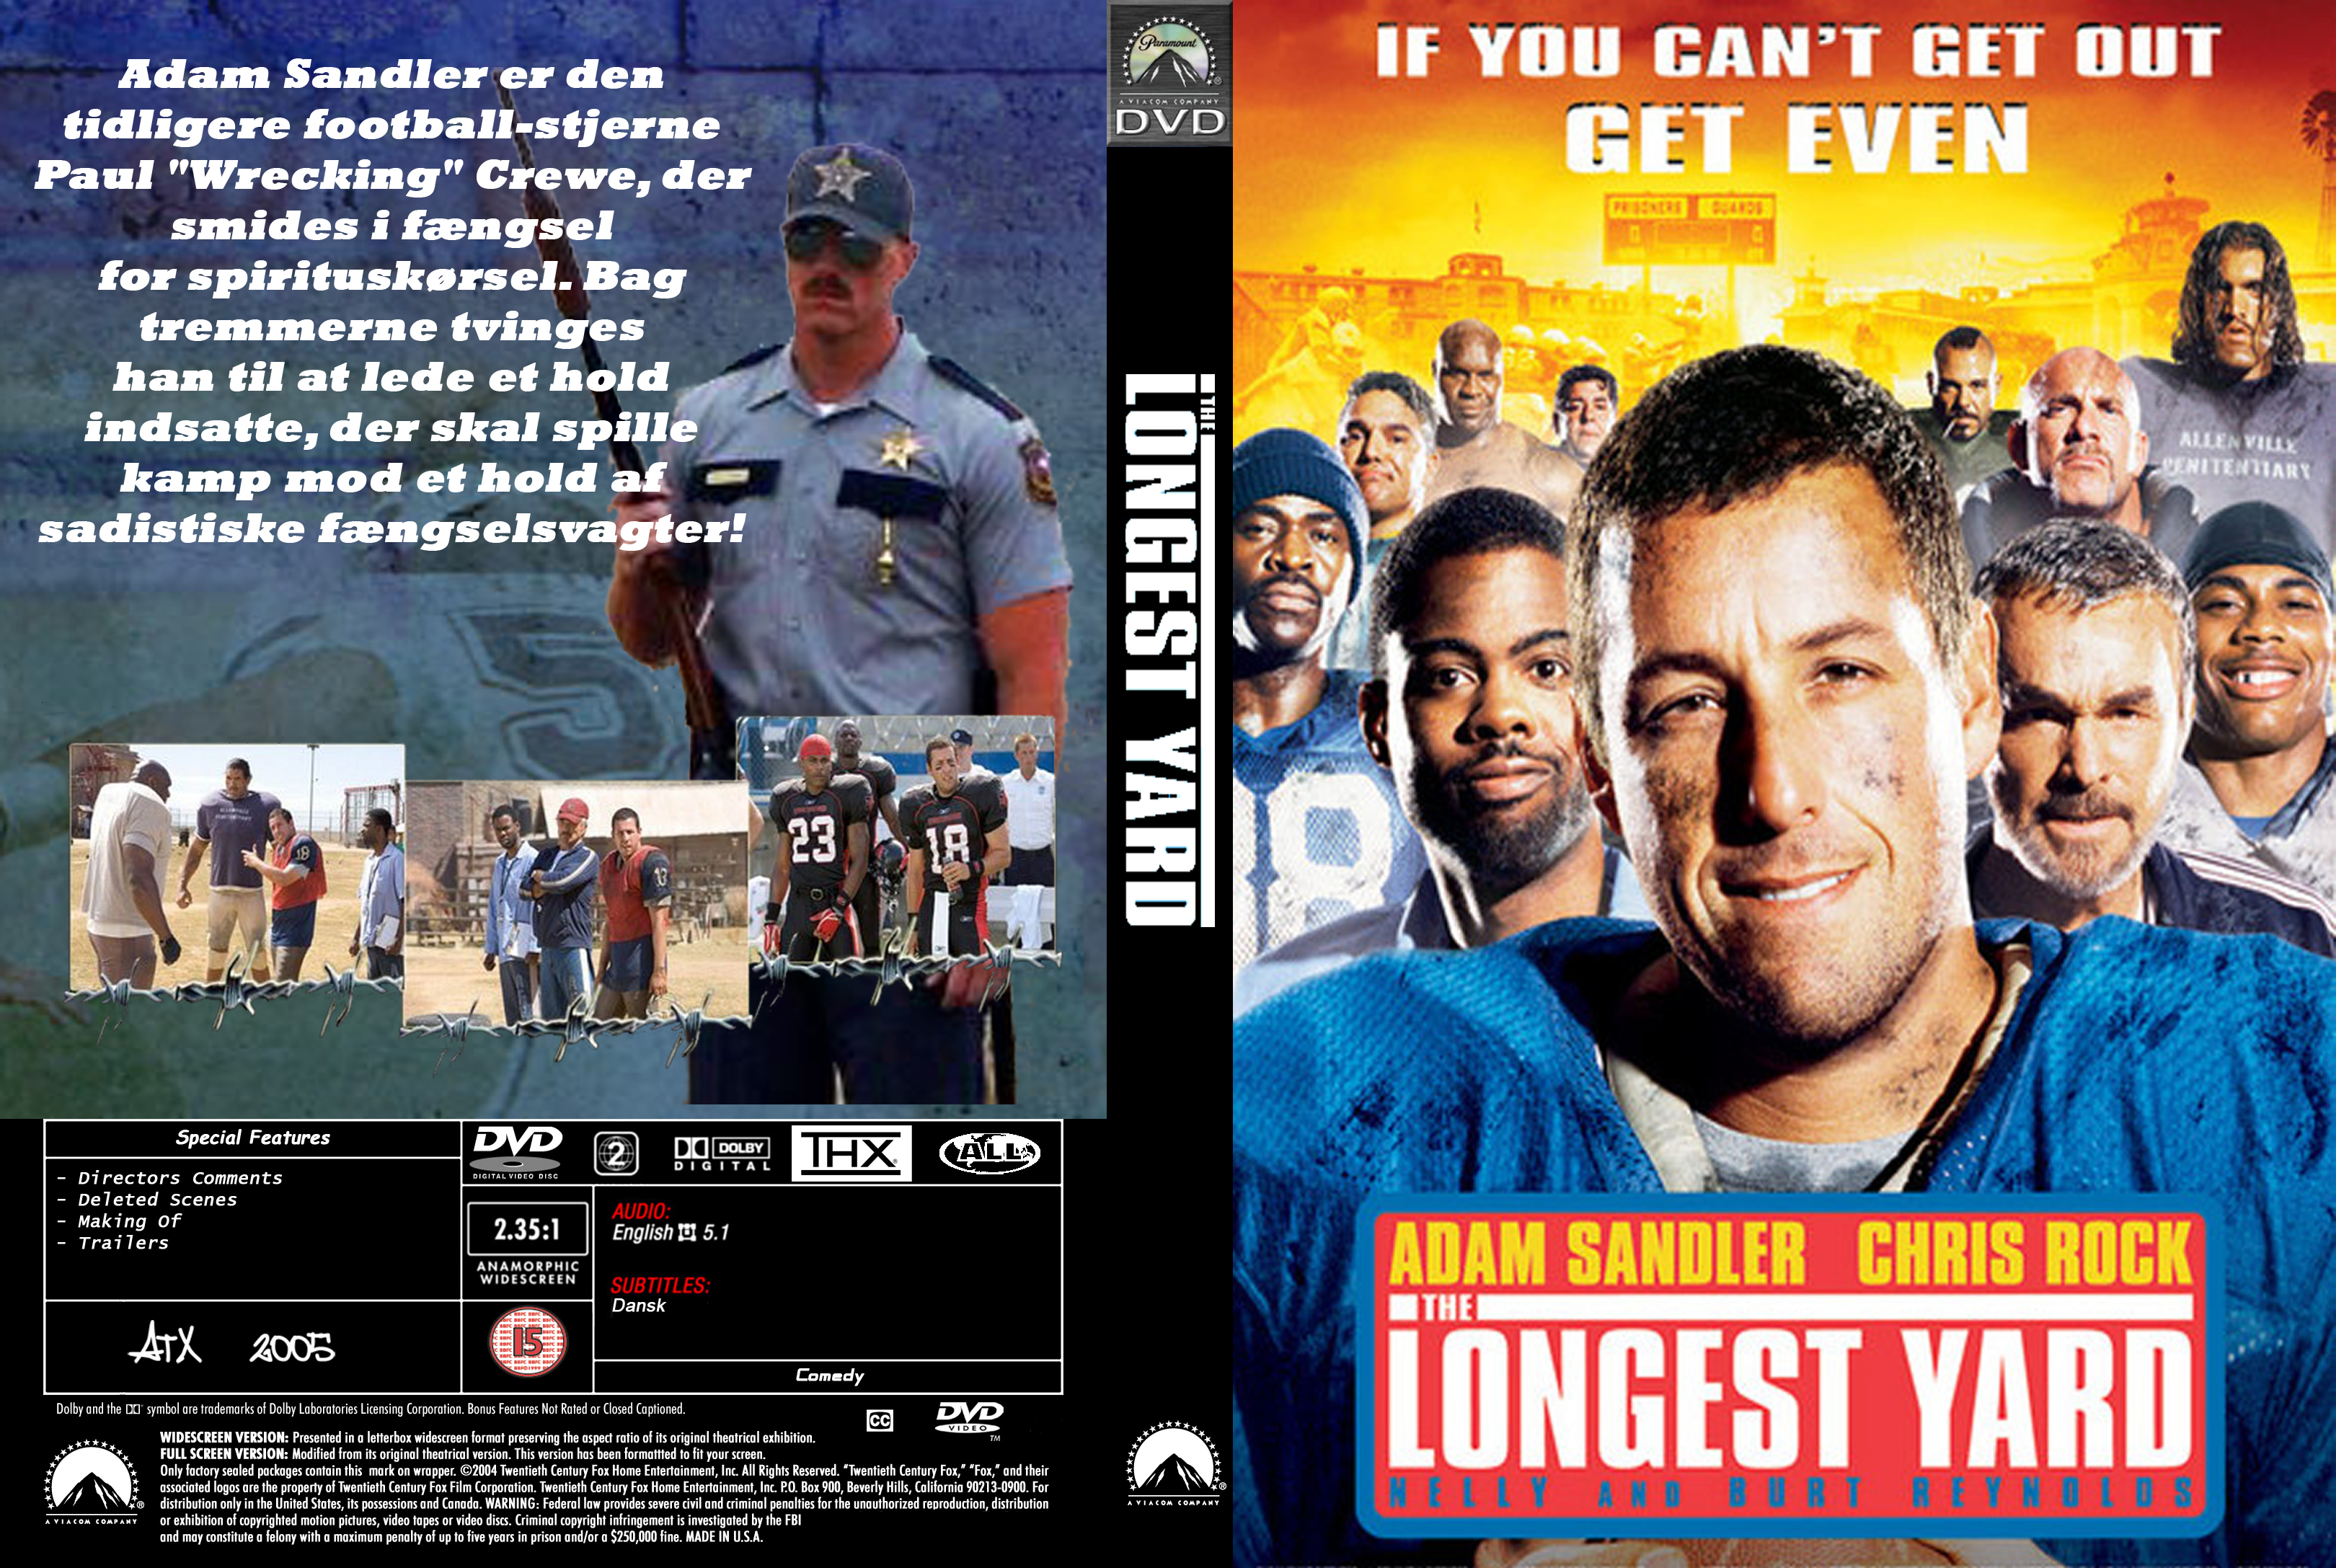 Covers Box Sk The Longest Yard 2005 High Quality Dvd Blueray Movie